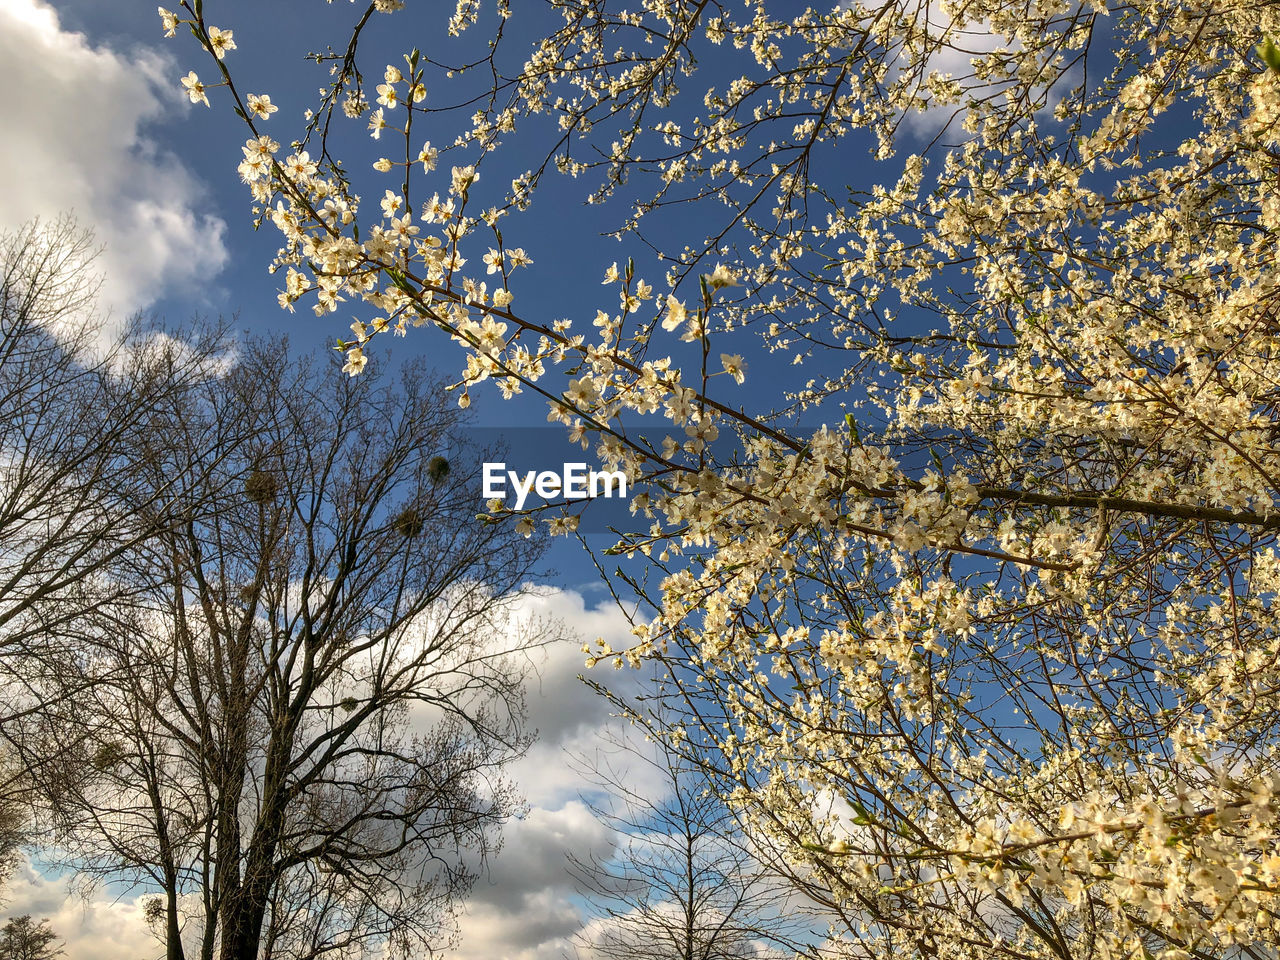 tree, plant, low angle view, sky, branch, beauty in nature, growth, nature, cloud - sky, day, no people, flower, flowering plant, outdoors, springtime, blossom, tranquility, sunlight, bare tree, freshness, cherry blossom, cherry tree